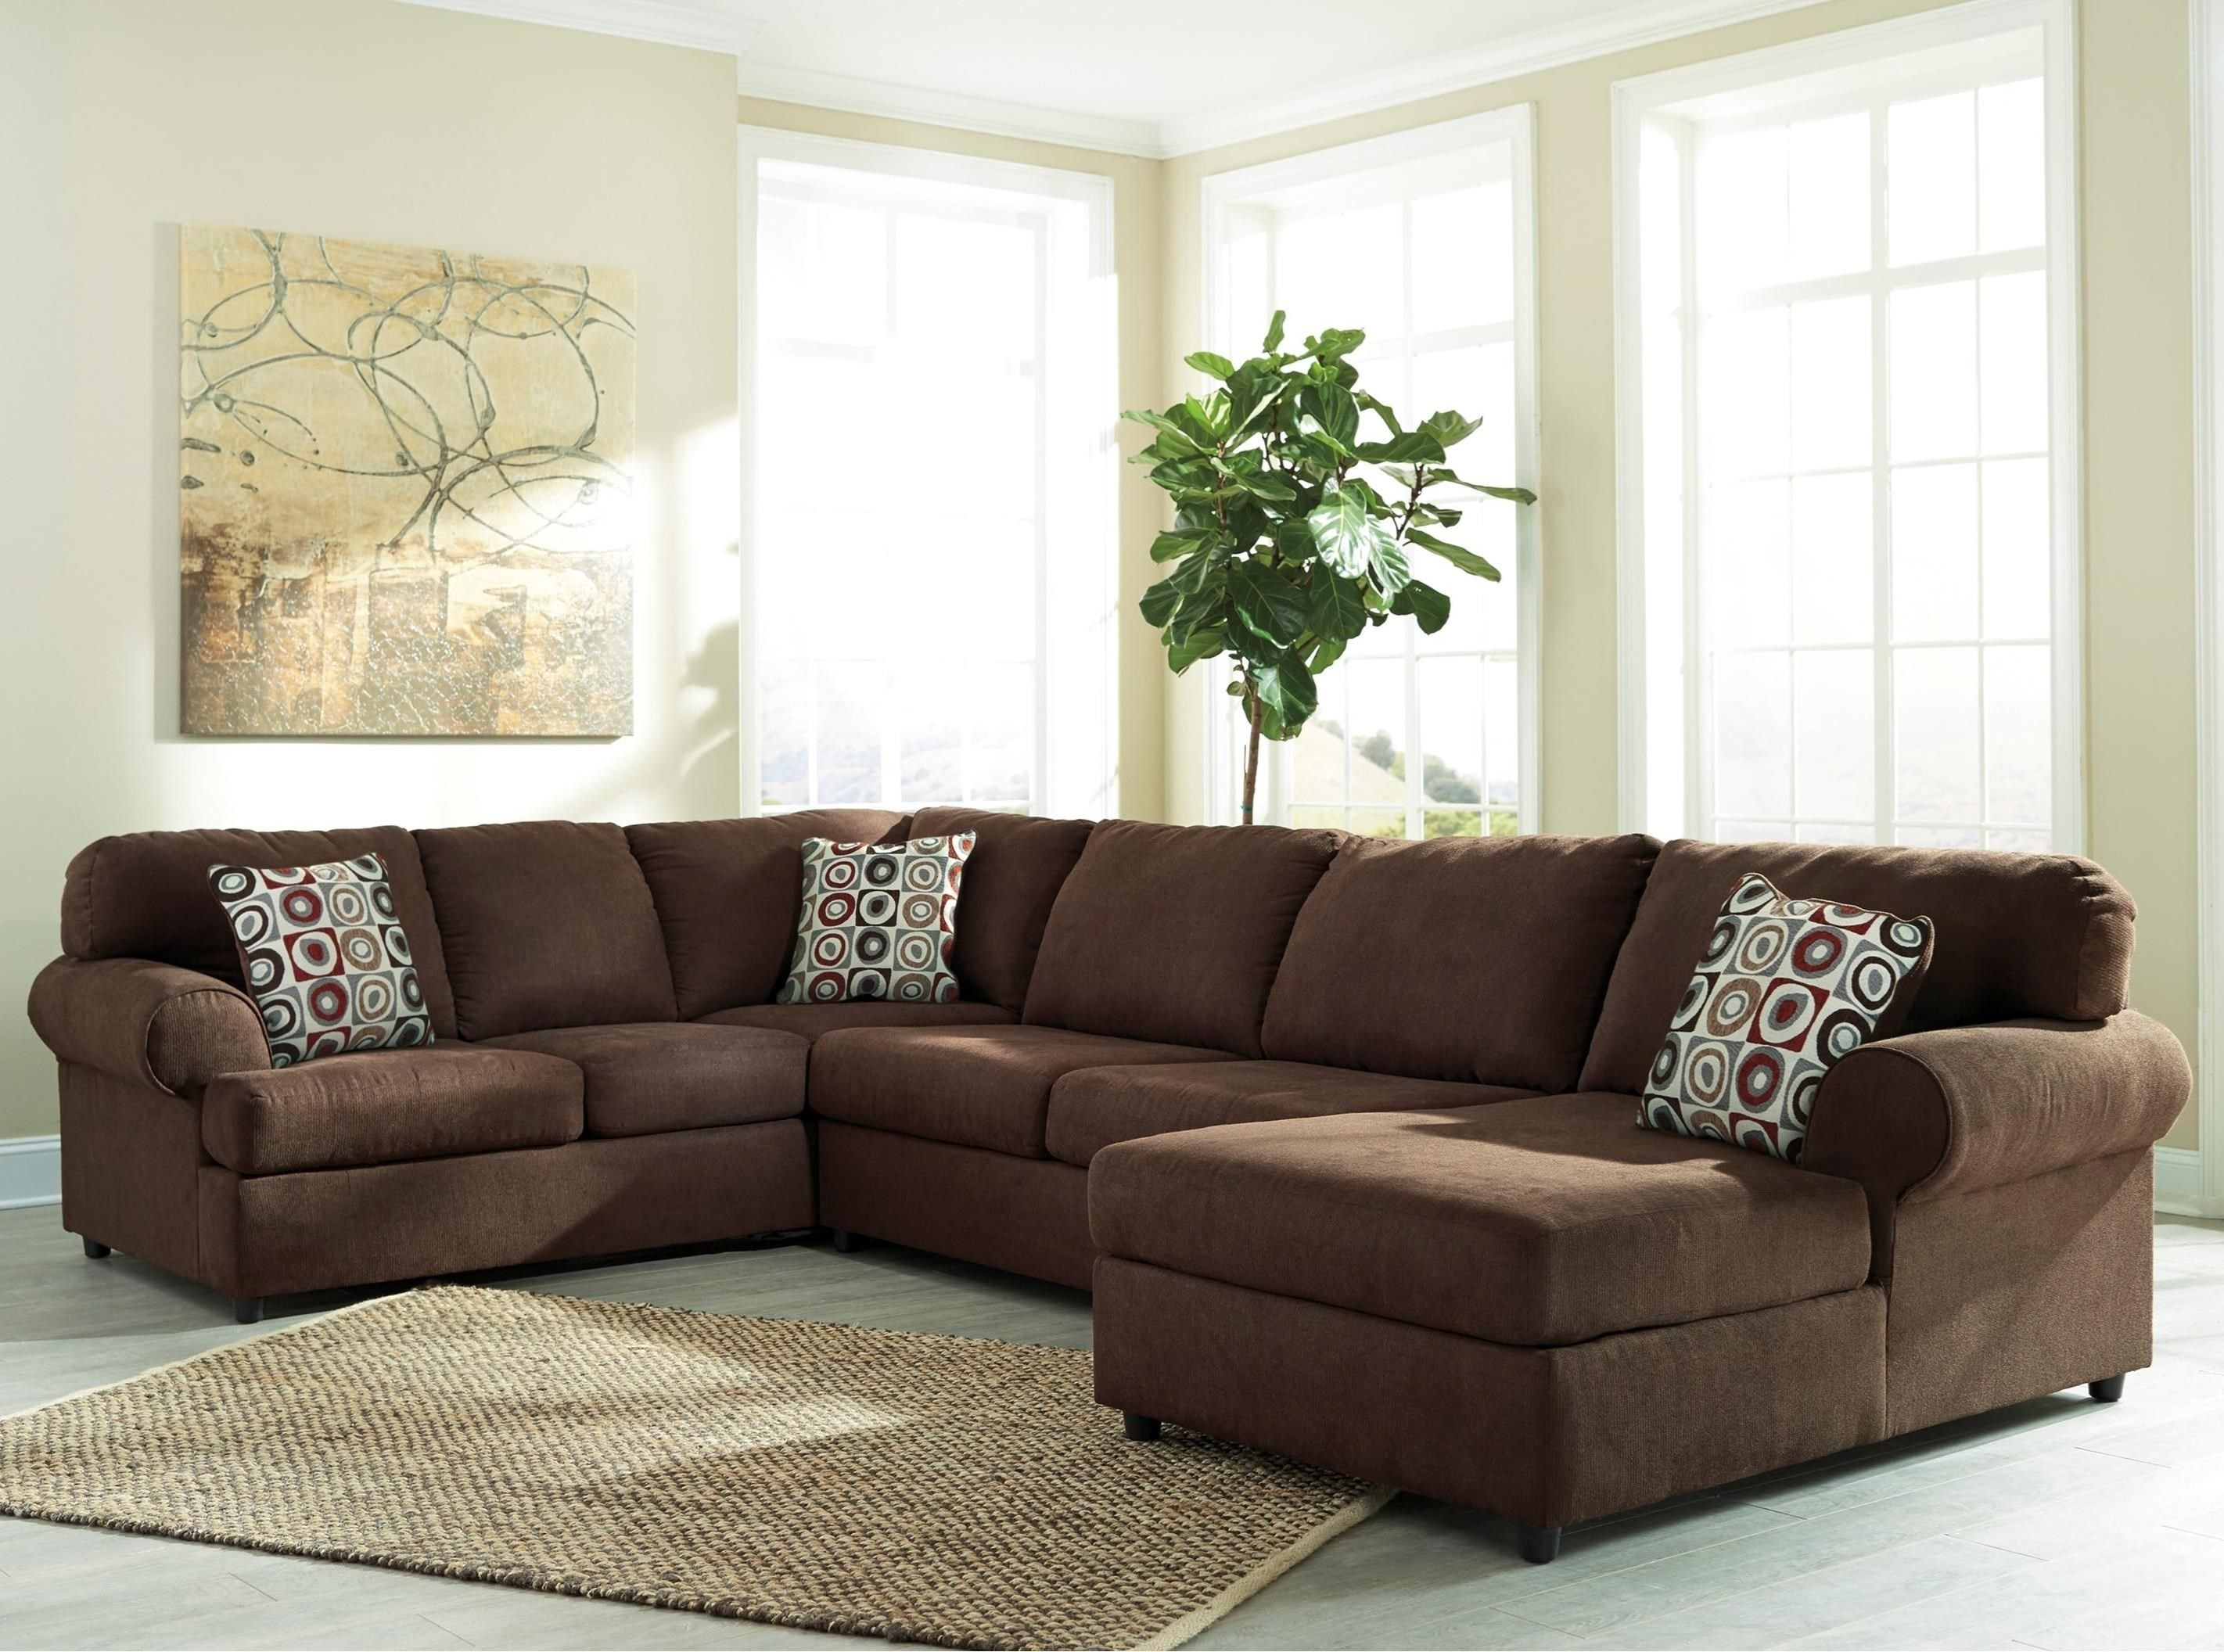 Jayceon 3 Piece Sectional With Chaisesignature Designashley Inside Royal Furniture Sectional Sofas (Image 7 of 10)